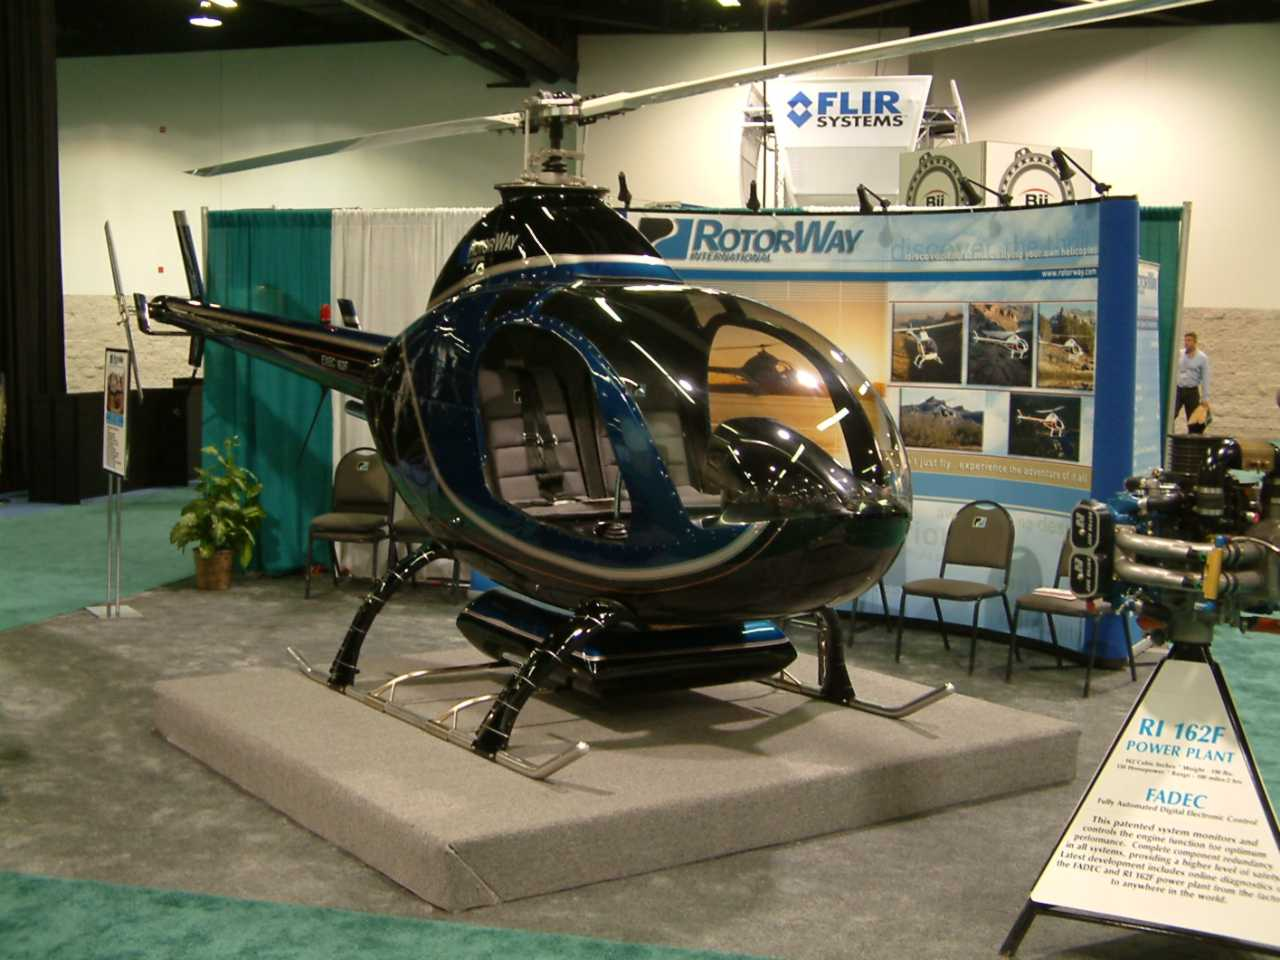 major helicopter manufacturers with Helicopter Pictures on Weo2017 additionally Pharmaceutical Packaging Market additionally Russian State Arms Contractor Launches Cyber Defence Center 517915 furthermore 95874 also Historic Helicopters The Legendary FW61.